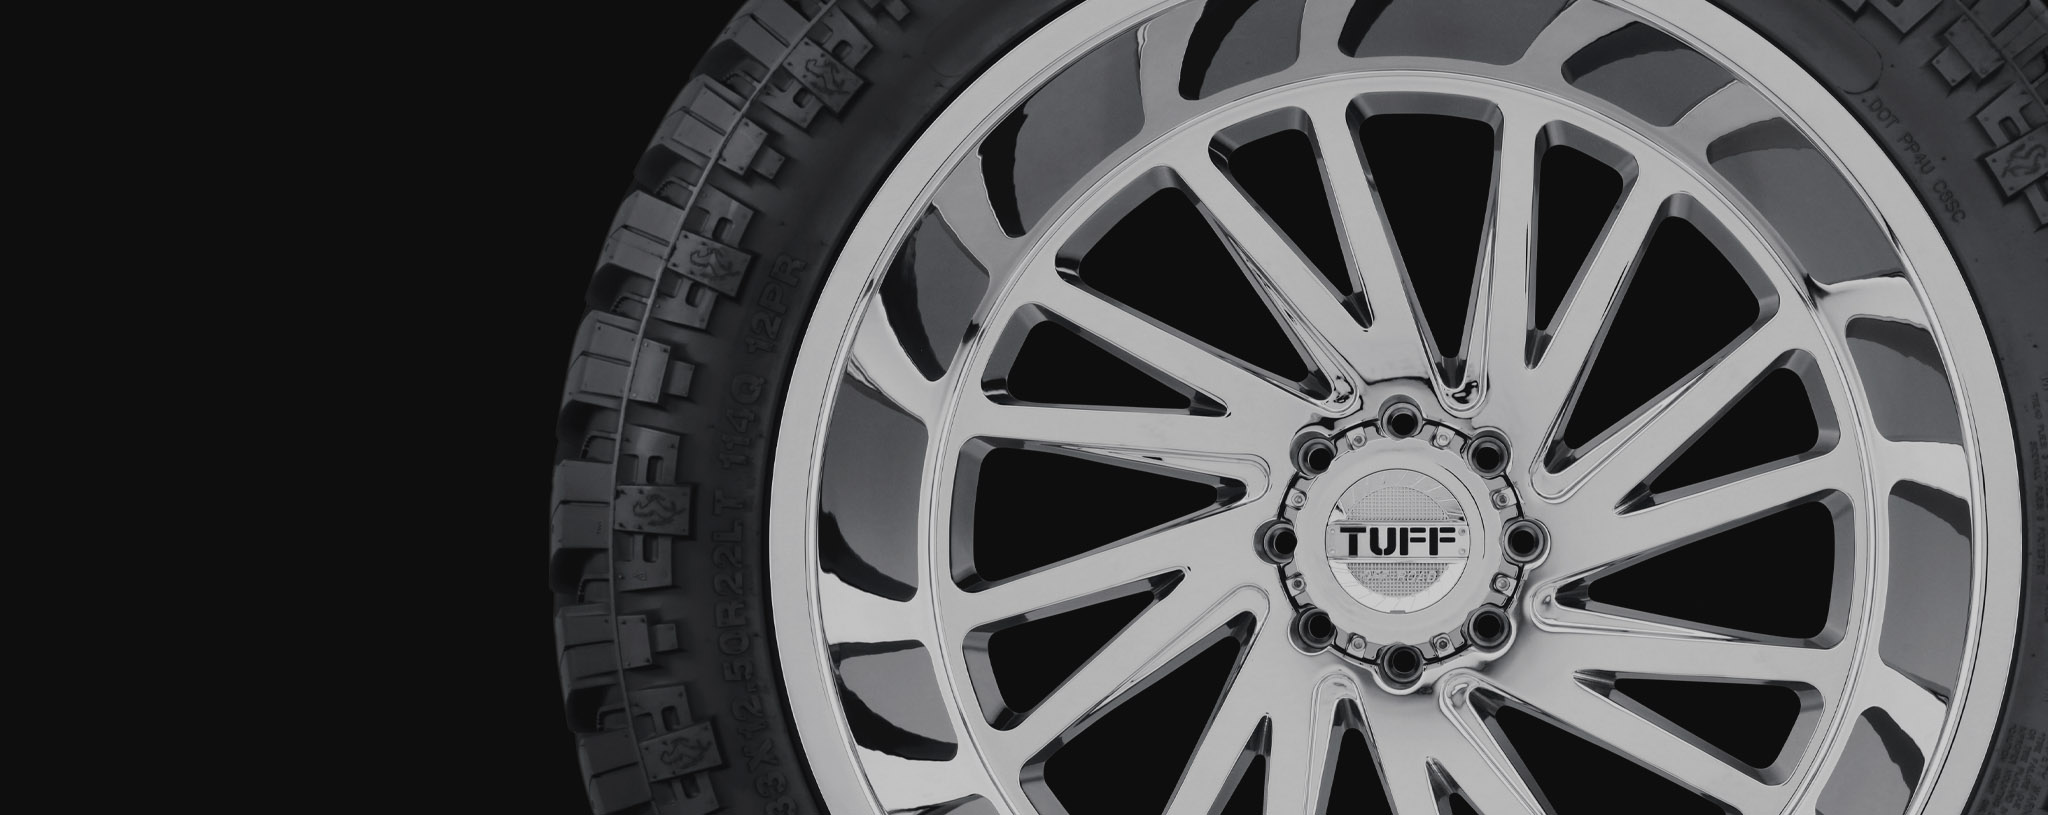 Jeep Cherokee 2012 >> Off Road Wheels | Truck Wheels and Rims by Tuff Wheels